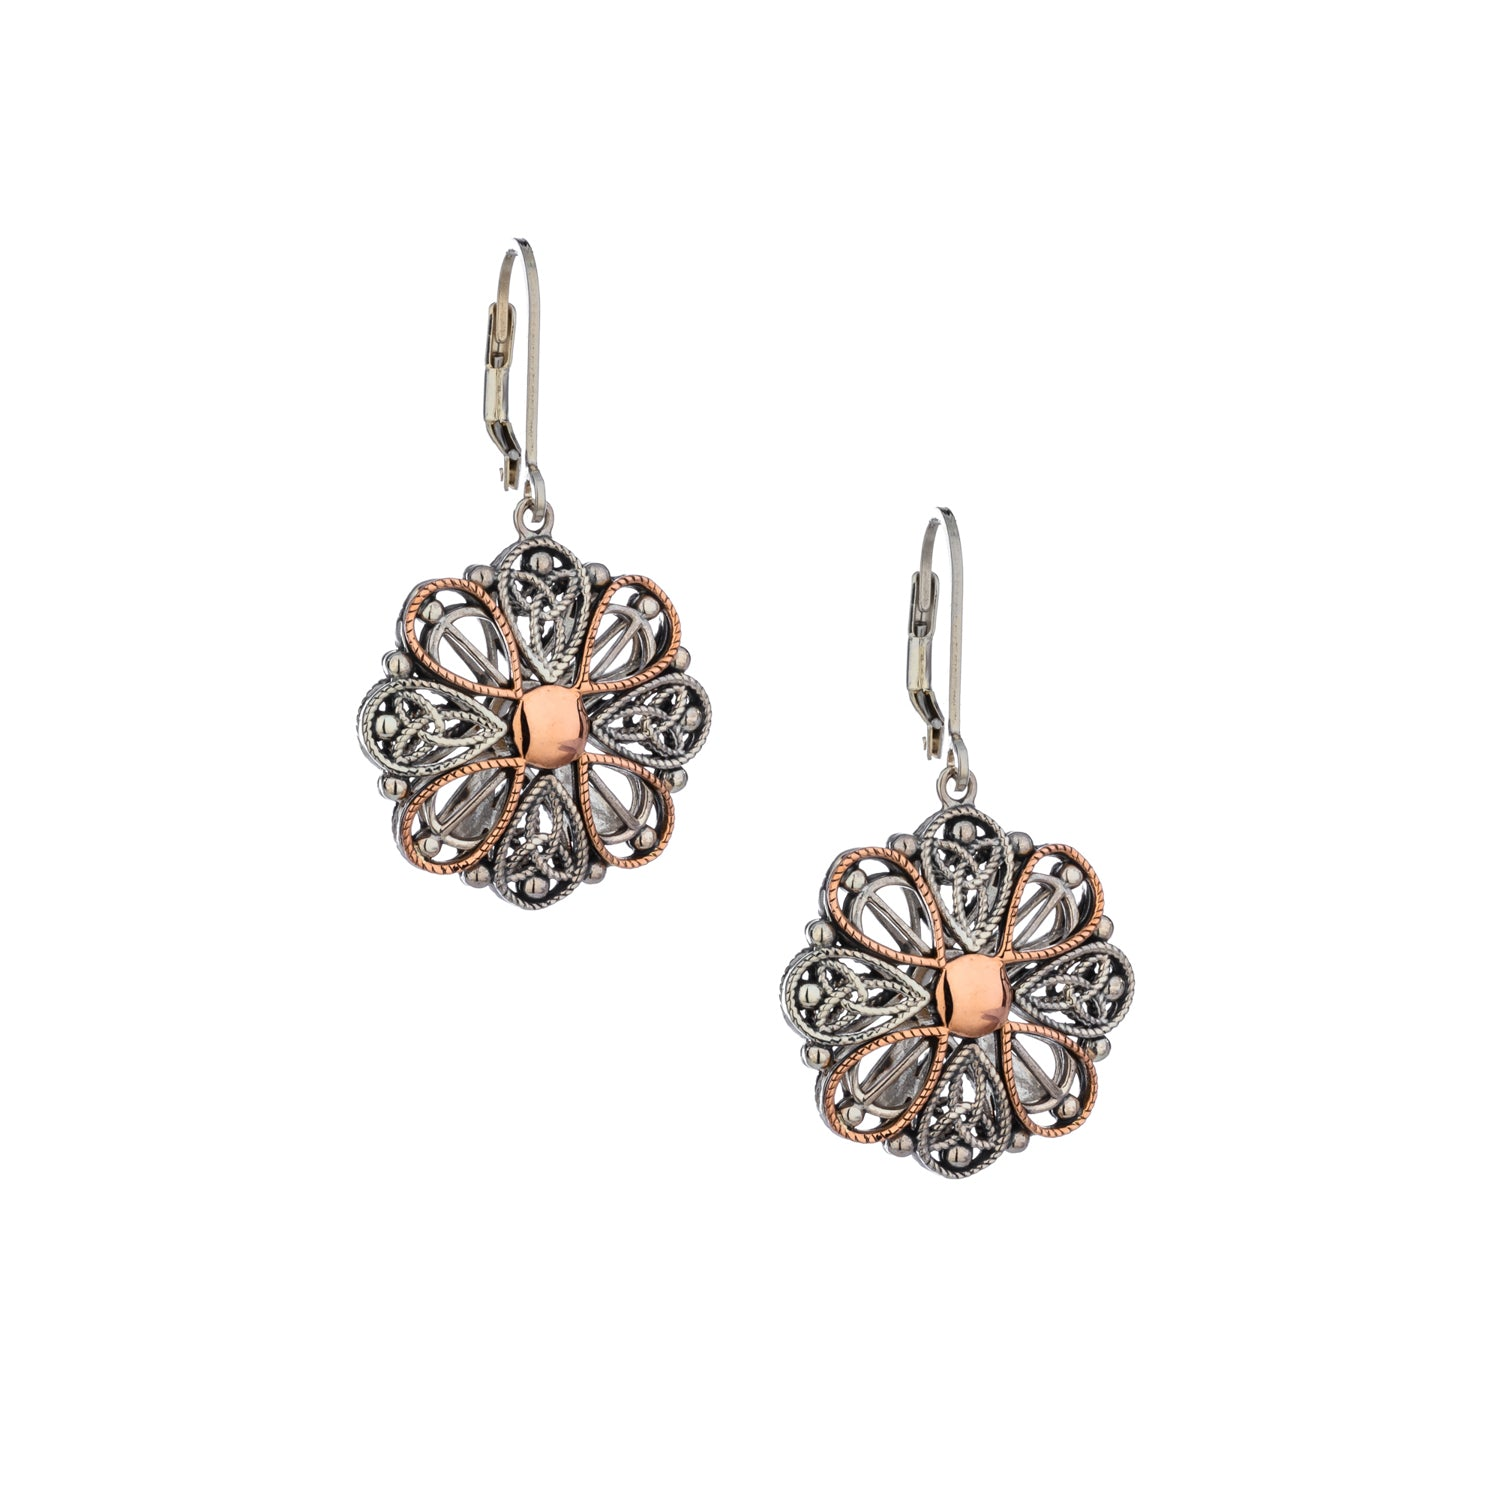 Earrings 10k Rose Ashen Rose Angel Leverback Earrings from welch and company jewelers near syracuse ny